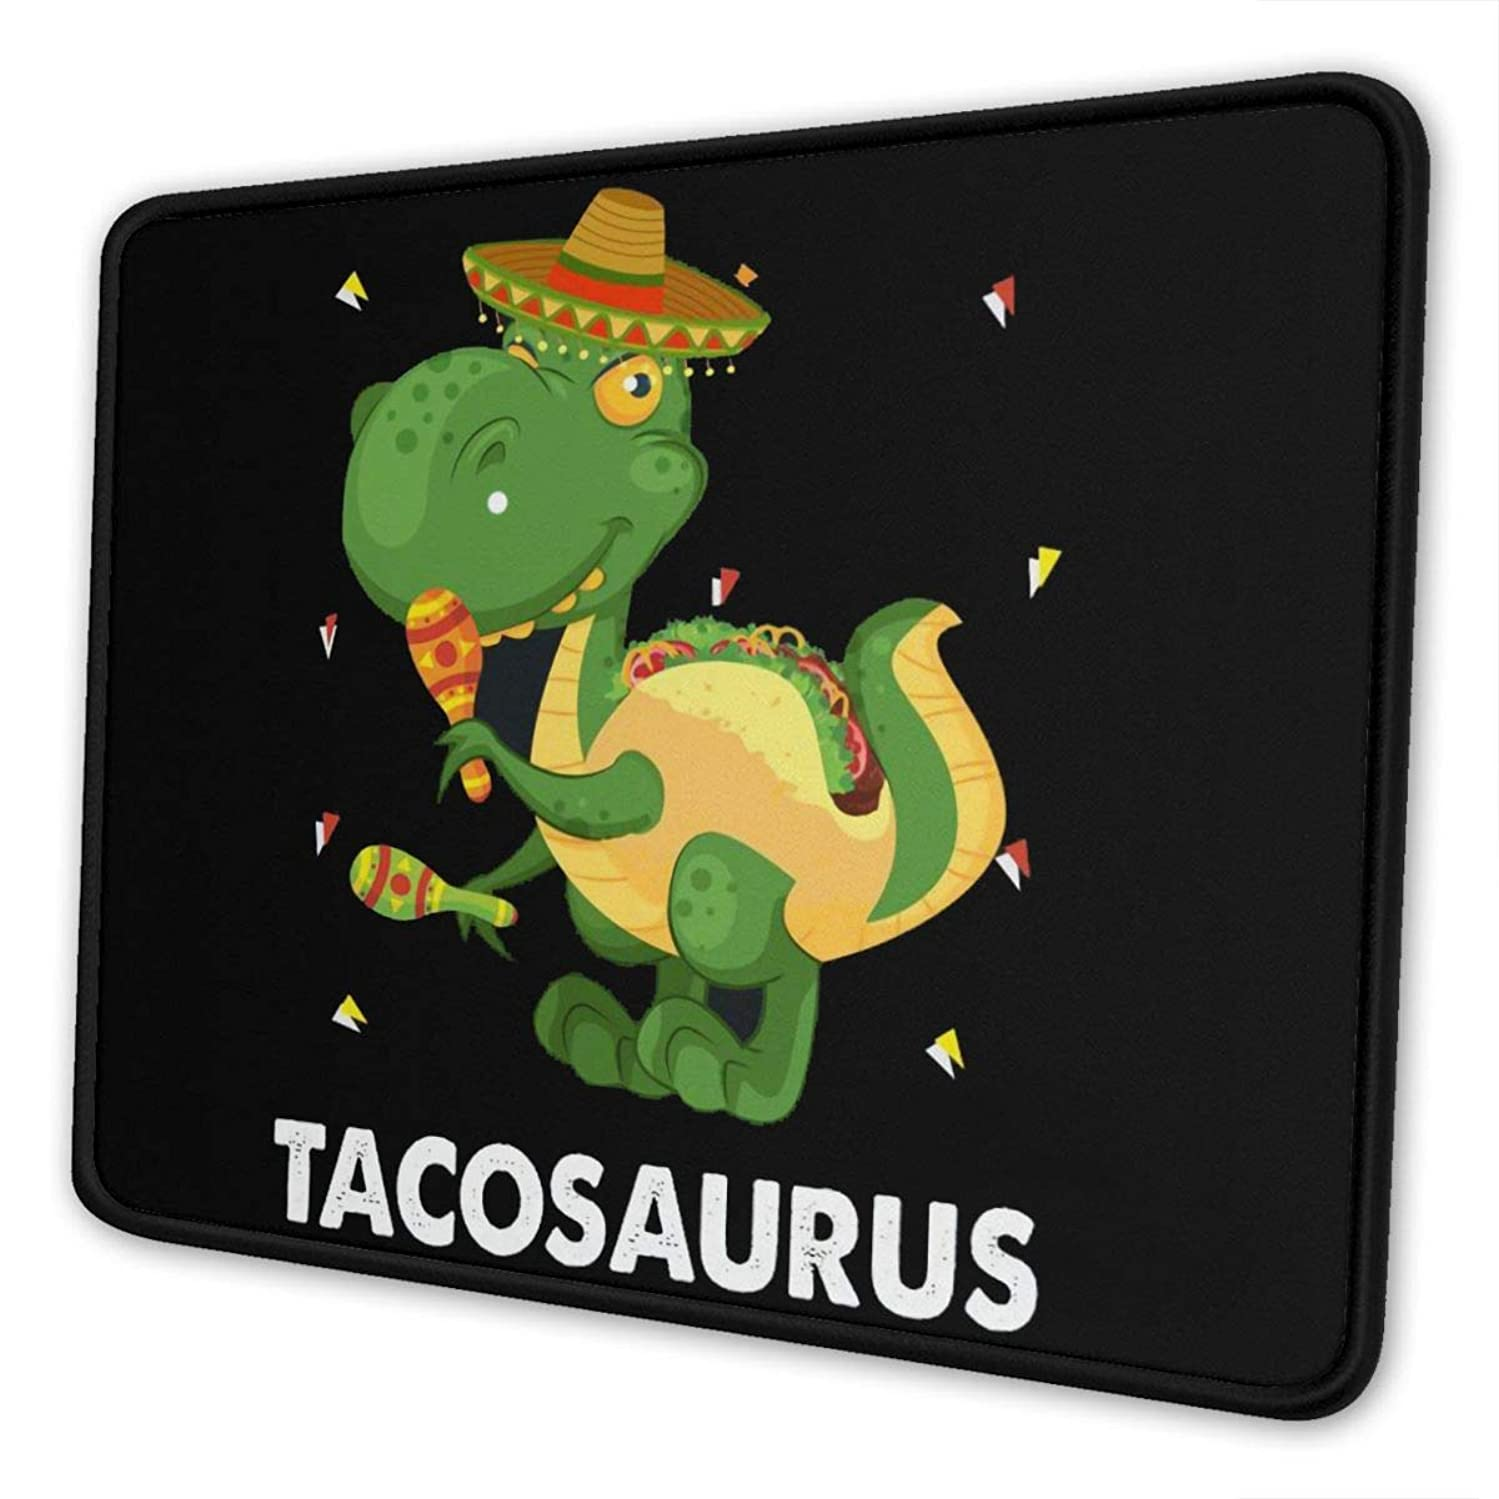 Dinosaur Taco Shirt Mini Themed Office Gaming Mouse Pad Gamer Computer Accessories Cool Mat Small for Girl Boy Kid Women Men Home Decor Merchandis Items